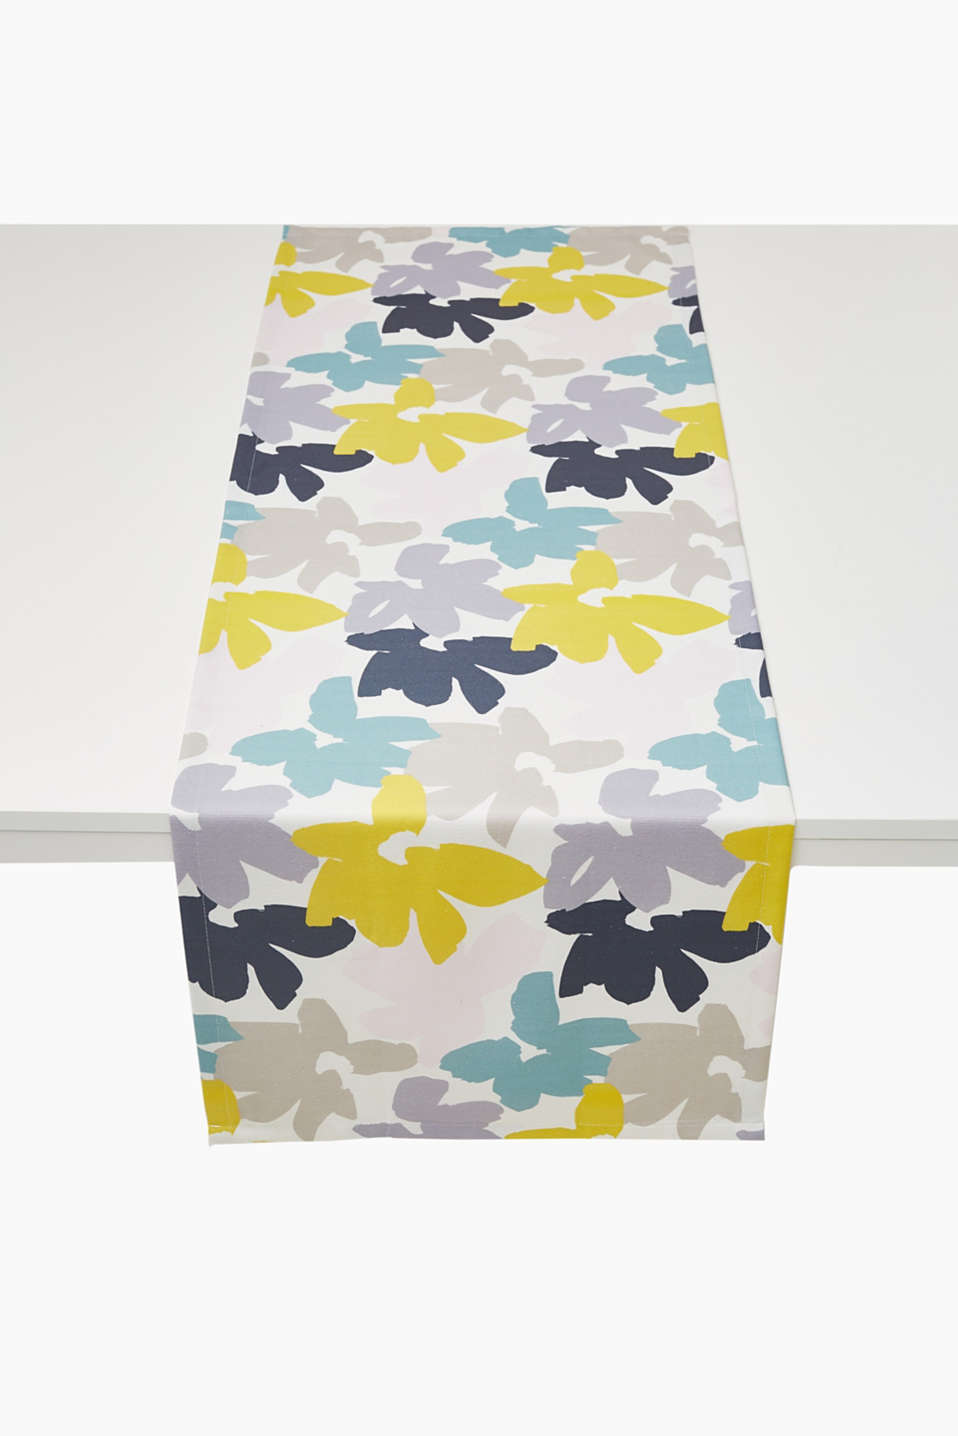 With a modern, floral pattern: table runner with mitred corners made of firm blended cotton